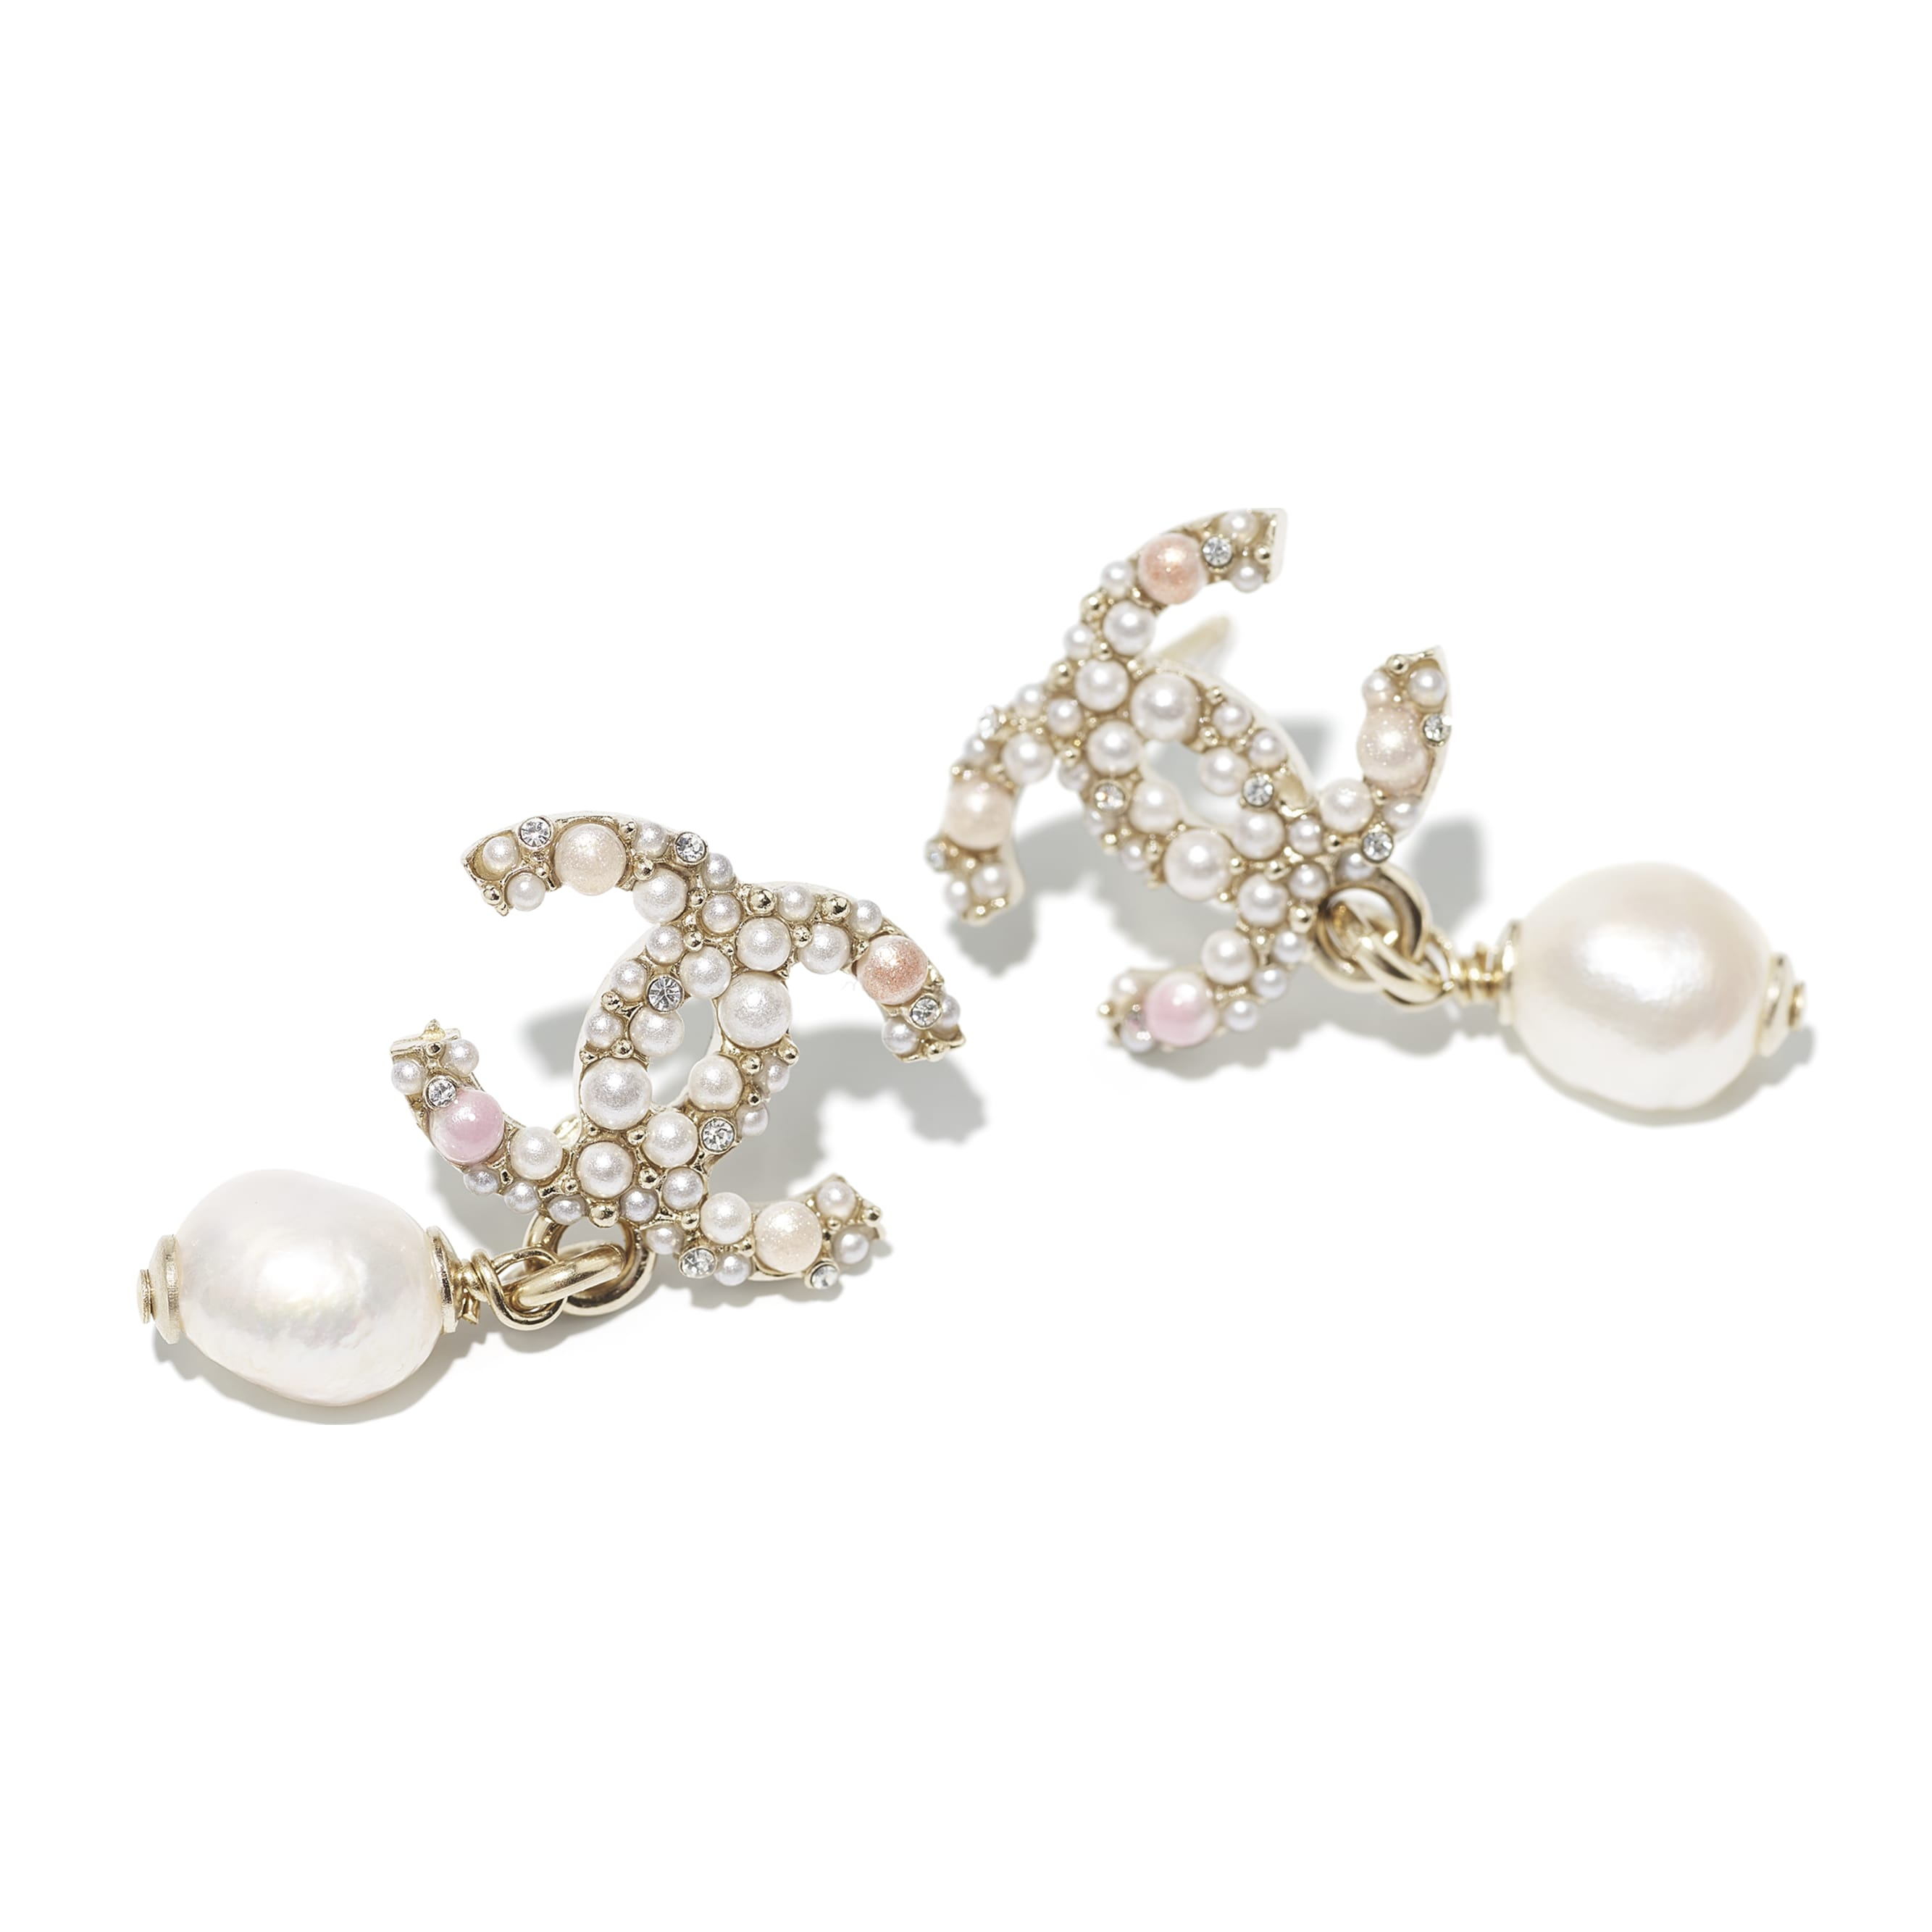 Earrings - Gold, Pearly White, Pink & Crystal - Metal, Cultured Freshwater Pearls, Glass Pearls & Strass - CHANEL - Alternative view - see standard sized version